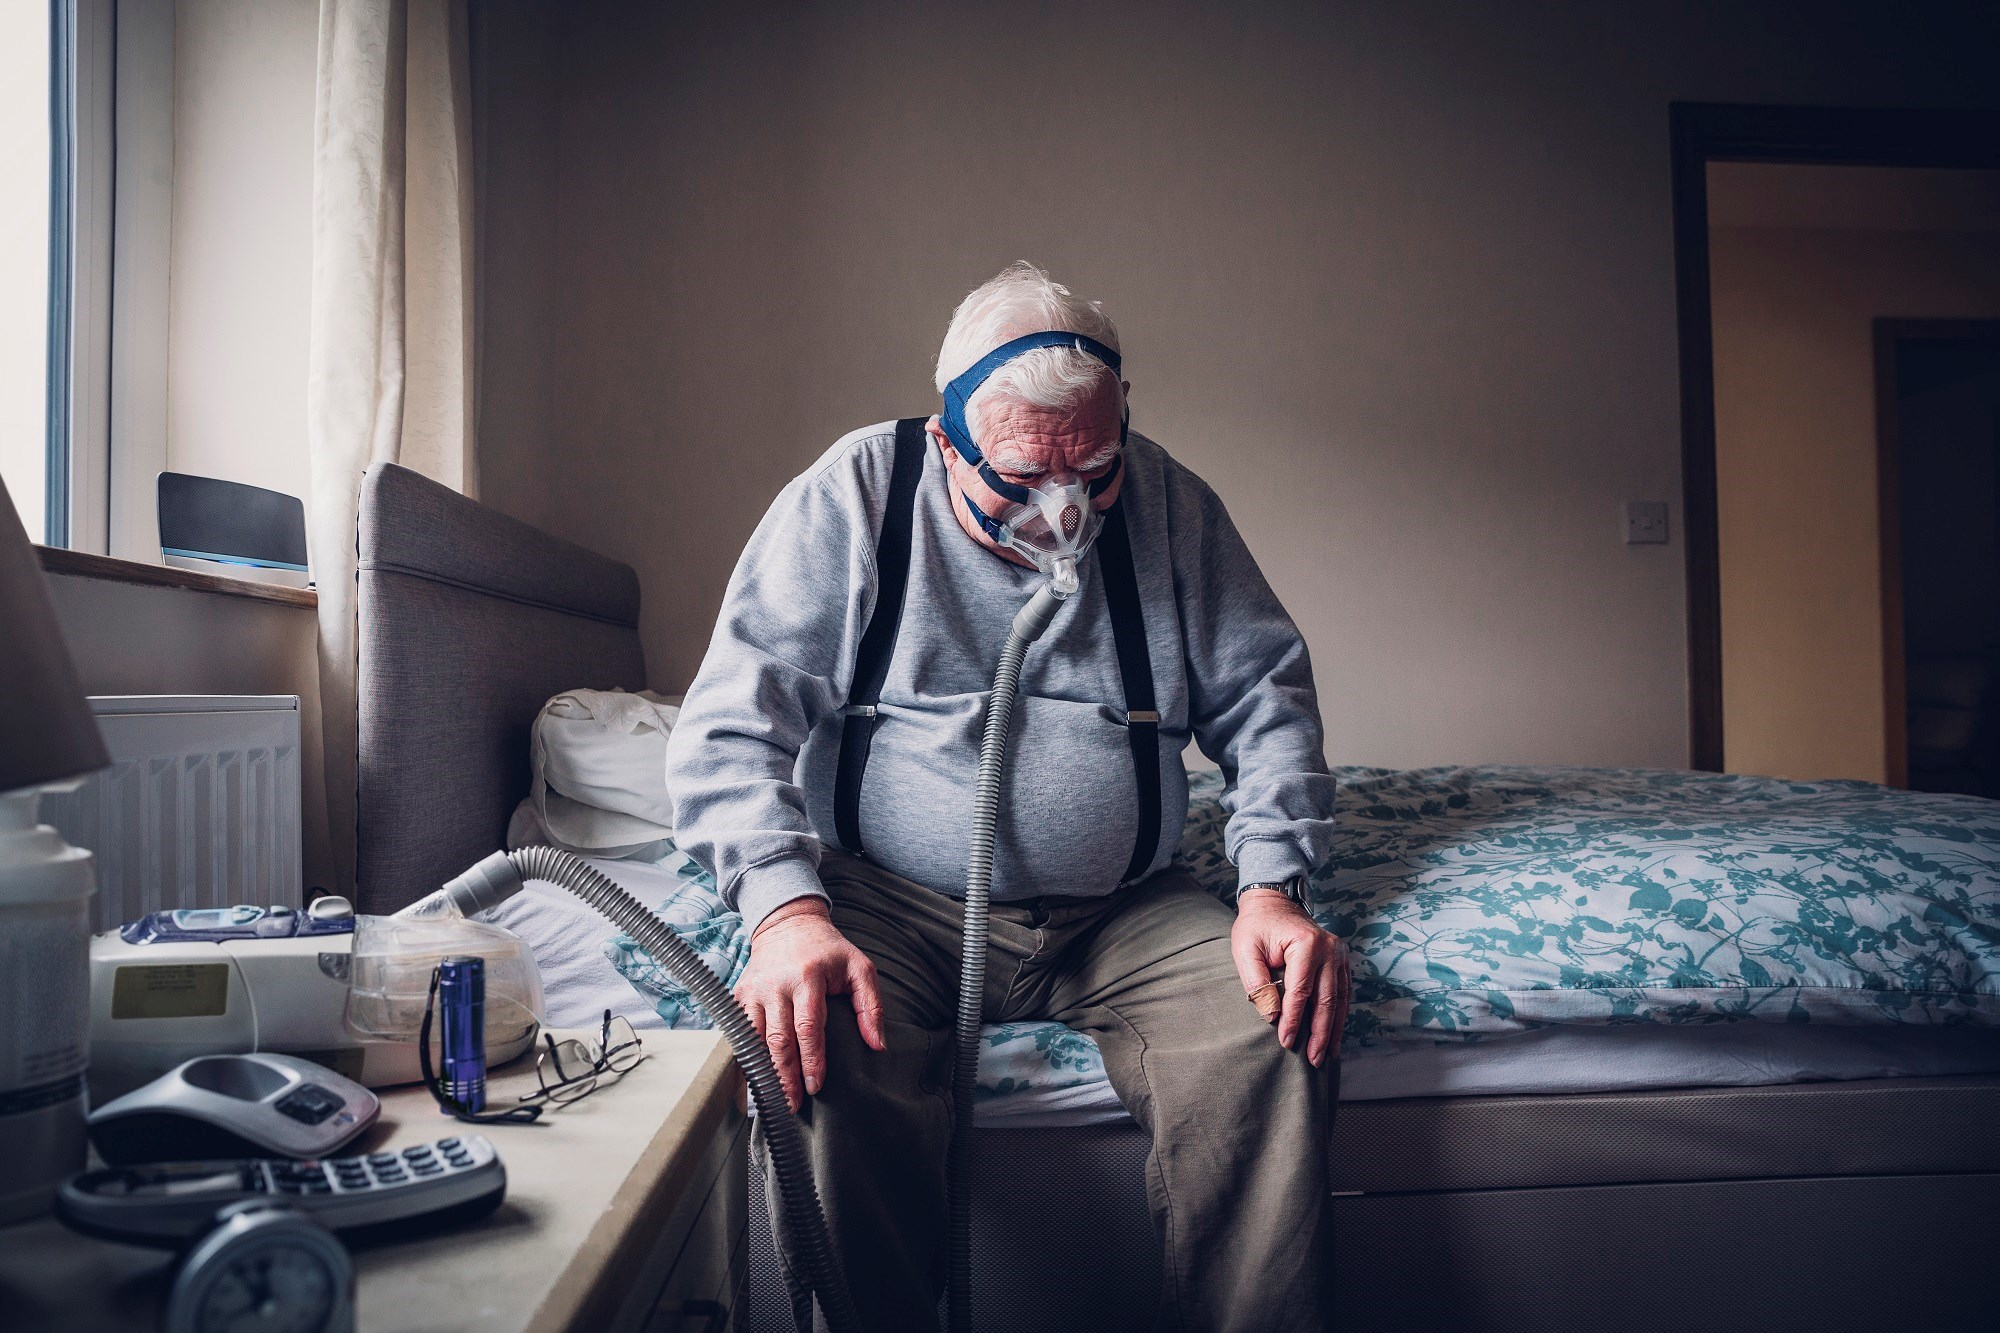 Fatigue a Potential Indicator of Overlapping Sleep Apnea and COPD